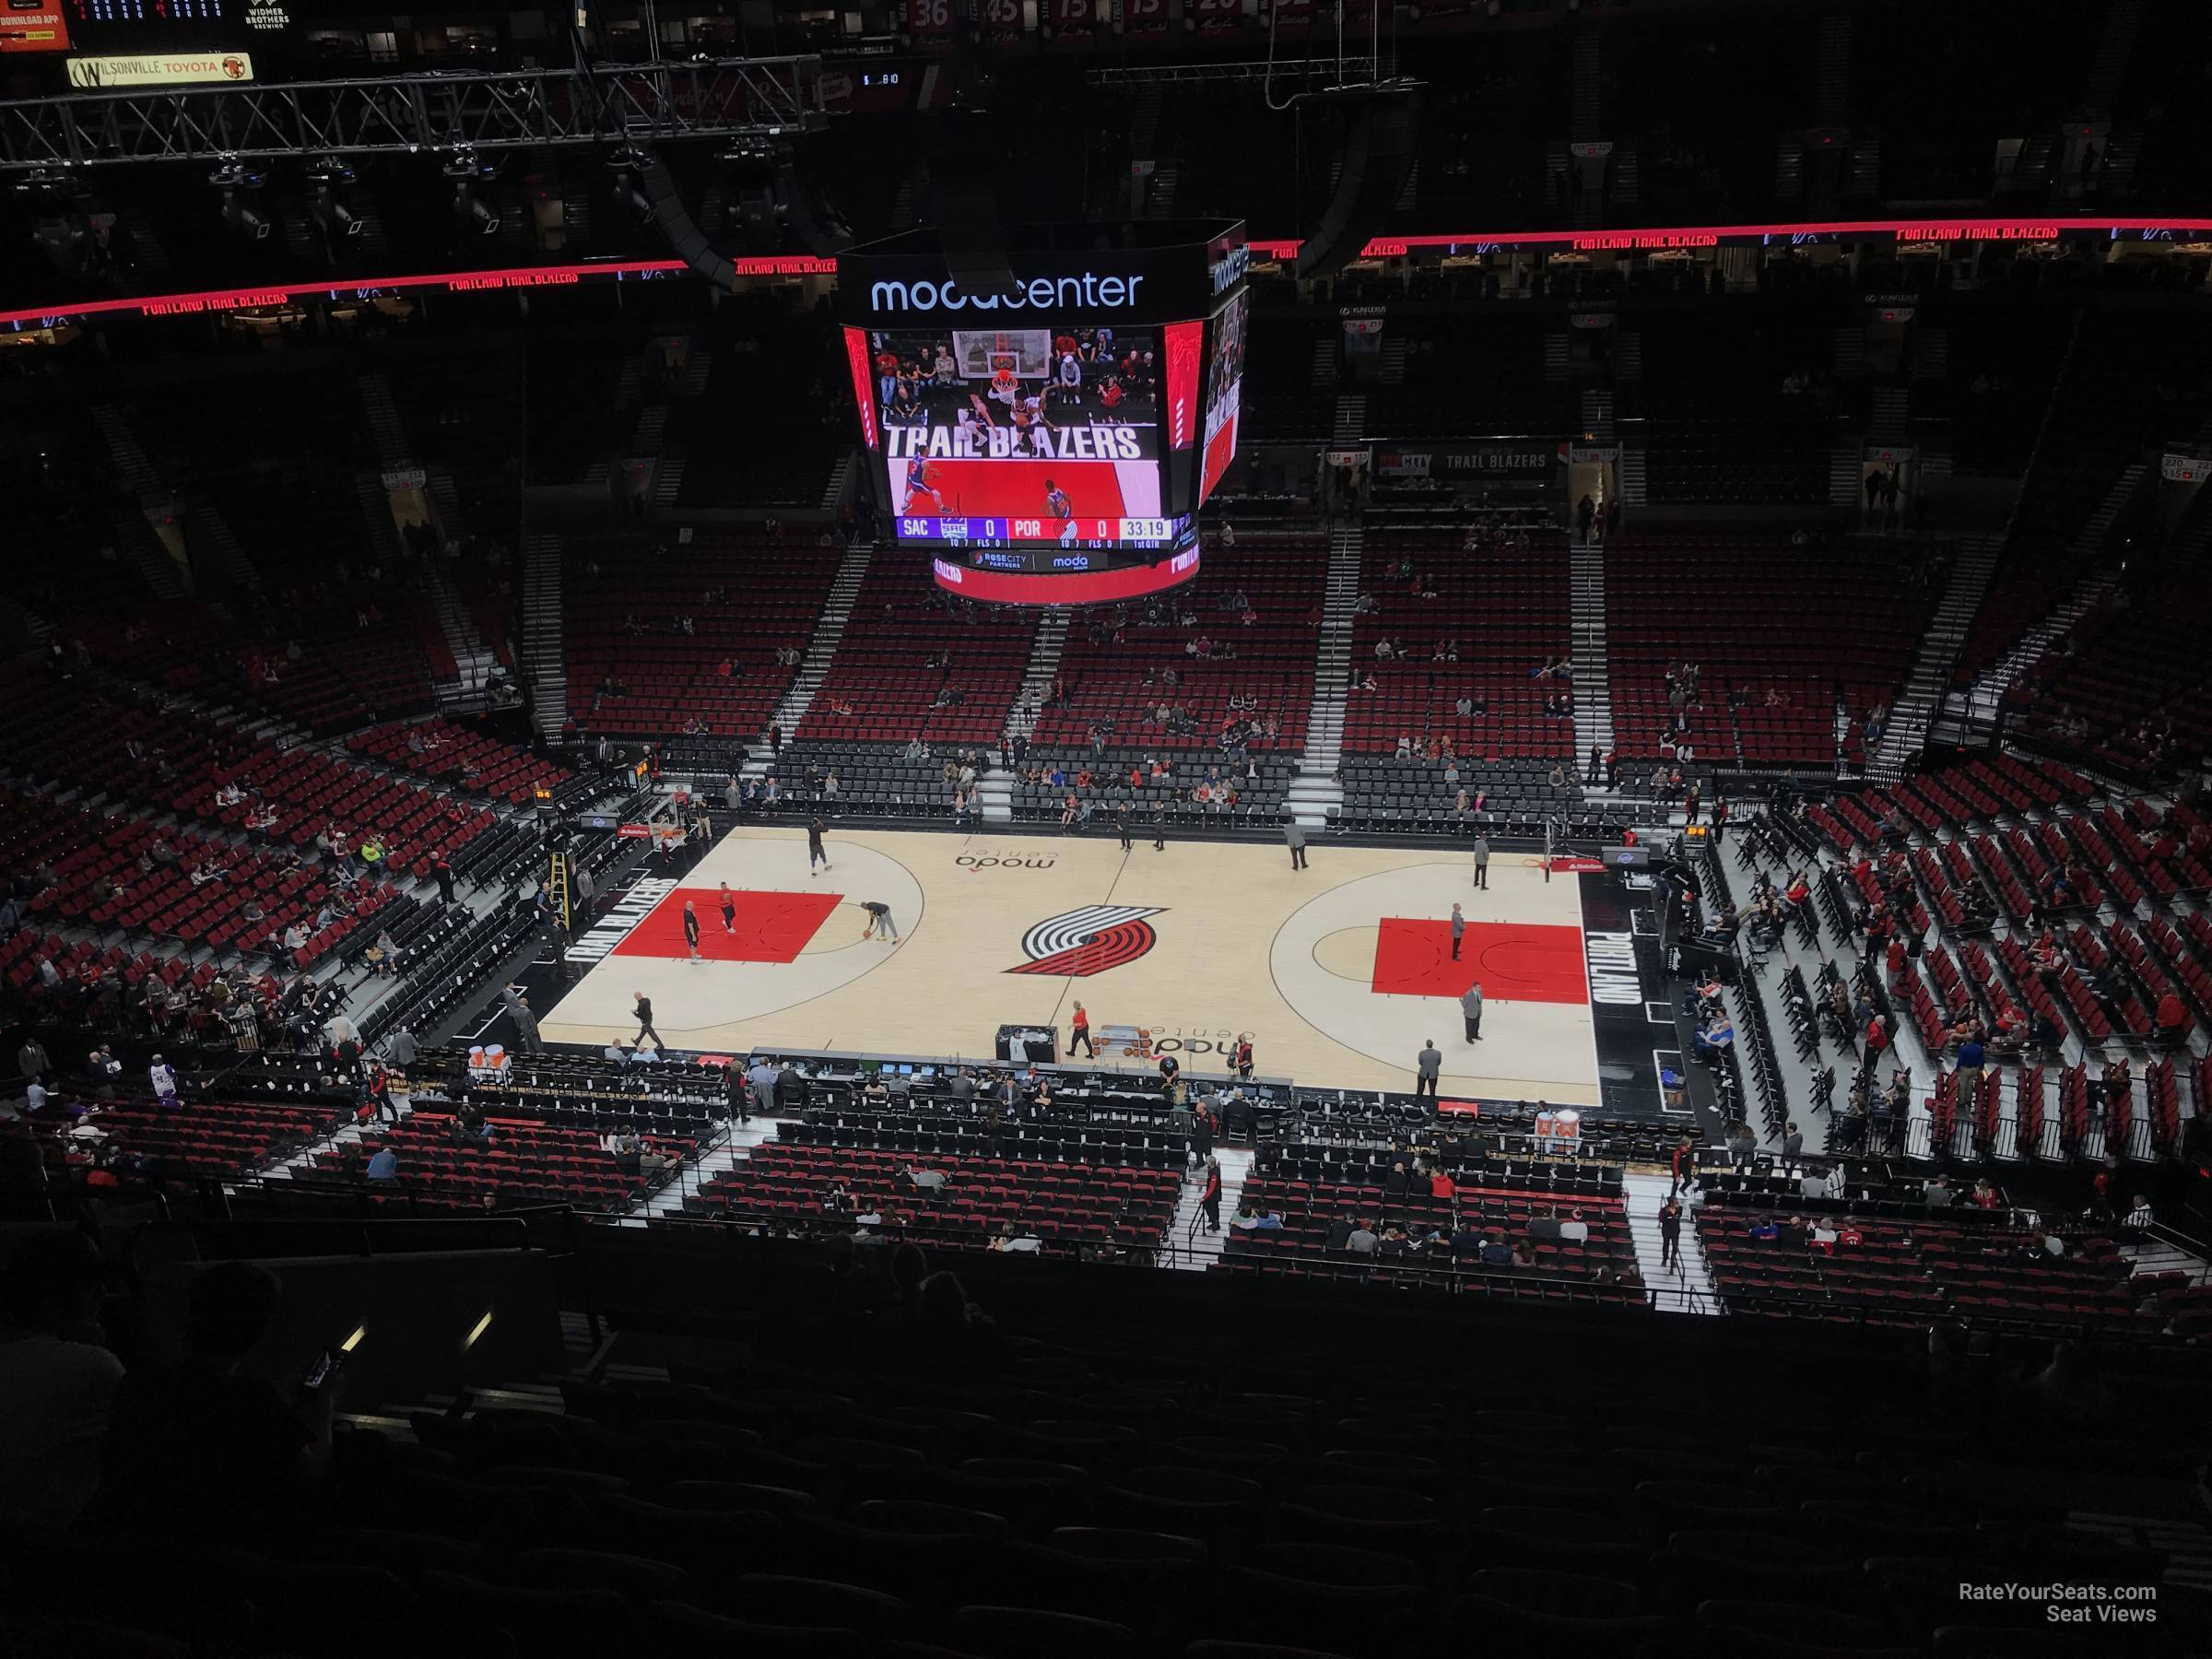 Section 334 seat view